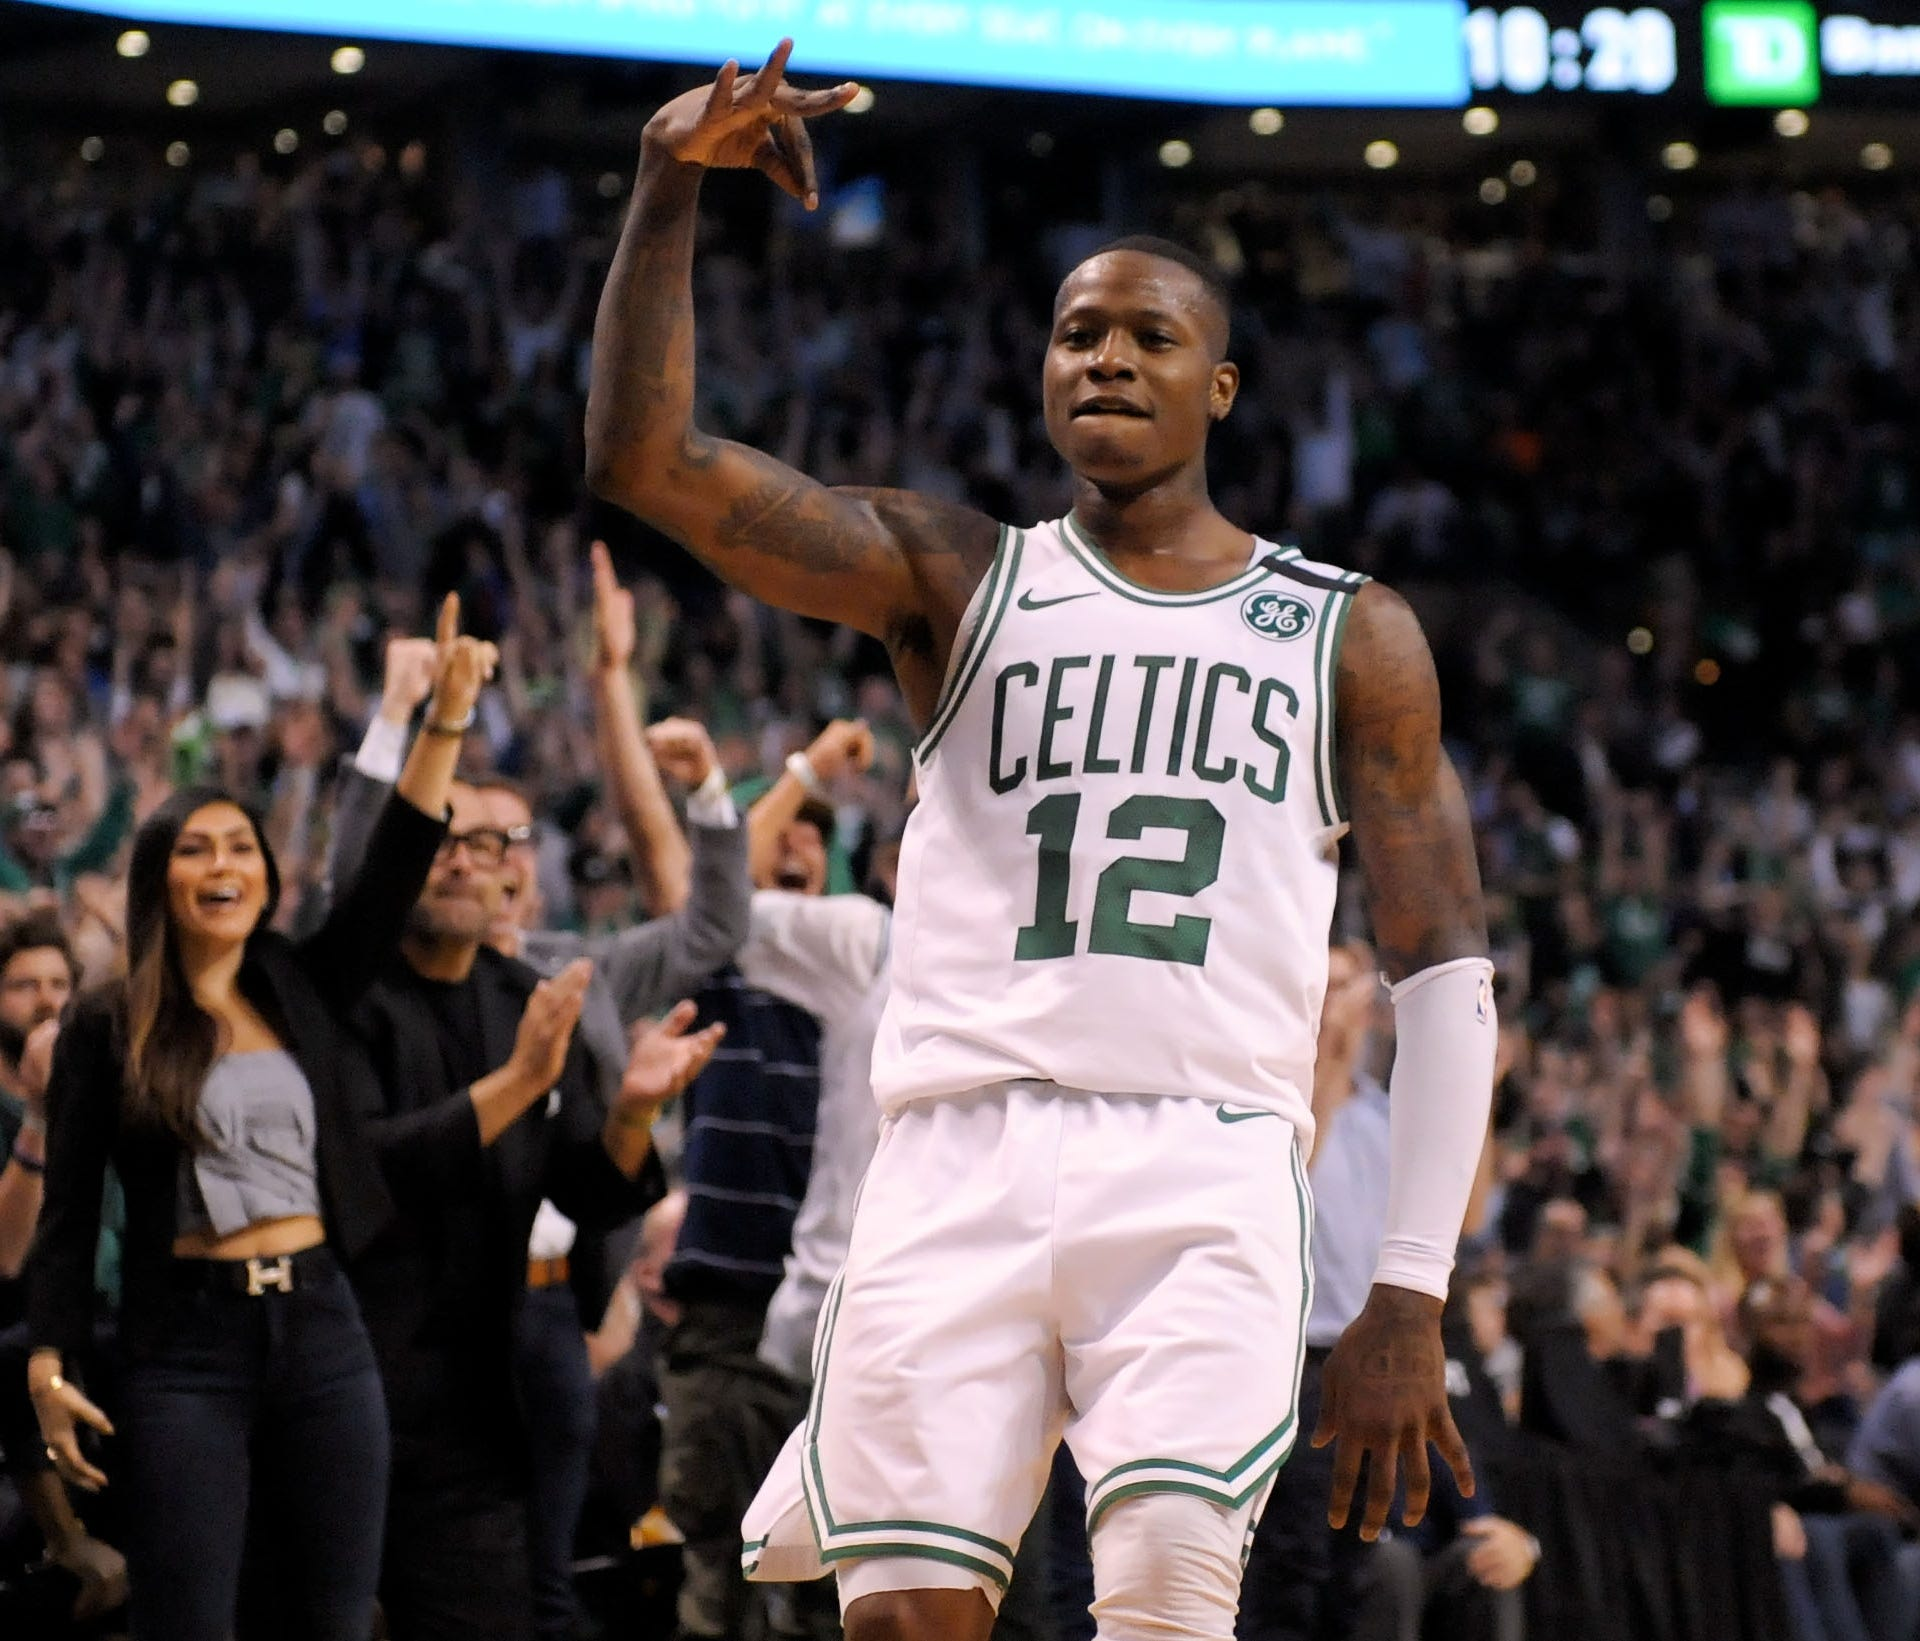 Boston Celtics guard Terry Rozier (12) reacts after scoring against the Cleveland Cavaliers during the third quarter in Game 2.